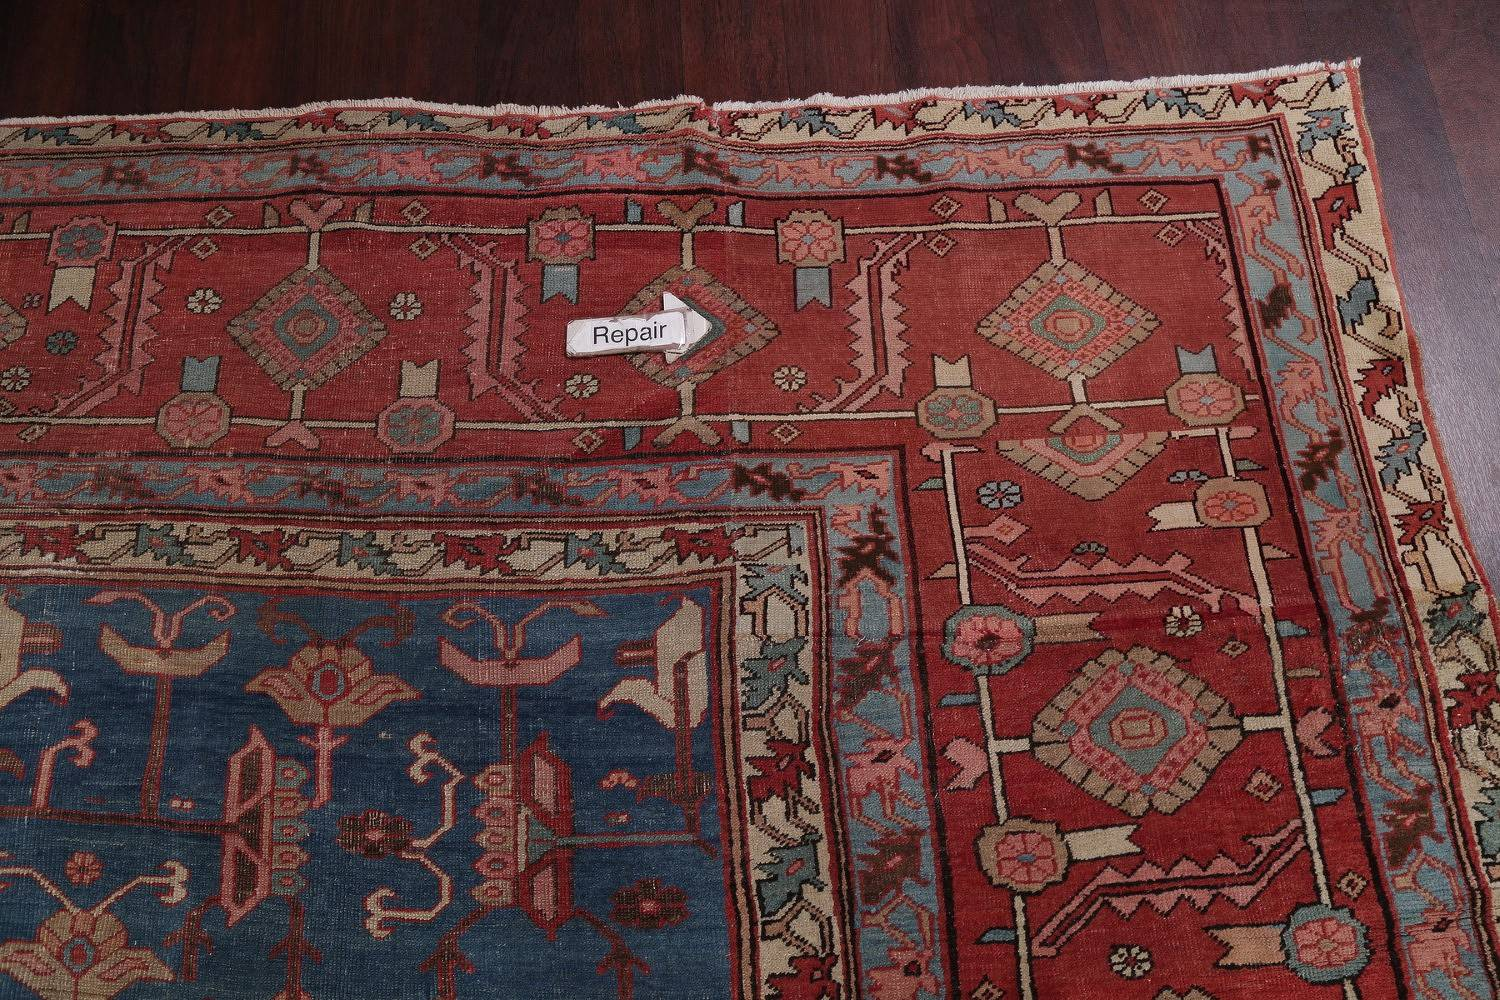 100% Vegetable Dye Tribal Red Heriz Serapi Bakhshayesh Persian Hand-Knotted Area Rug Wool 12x18